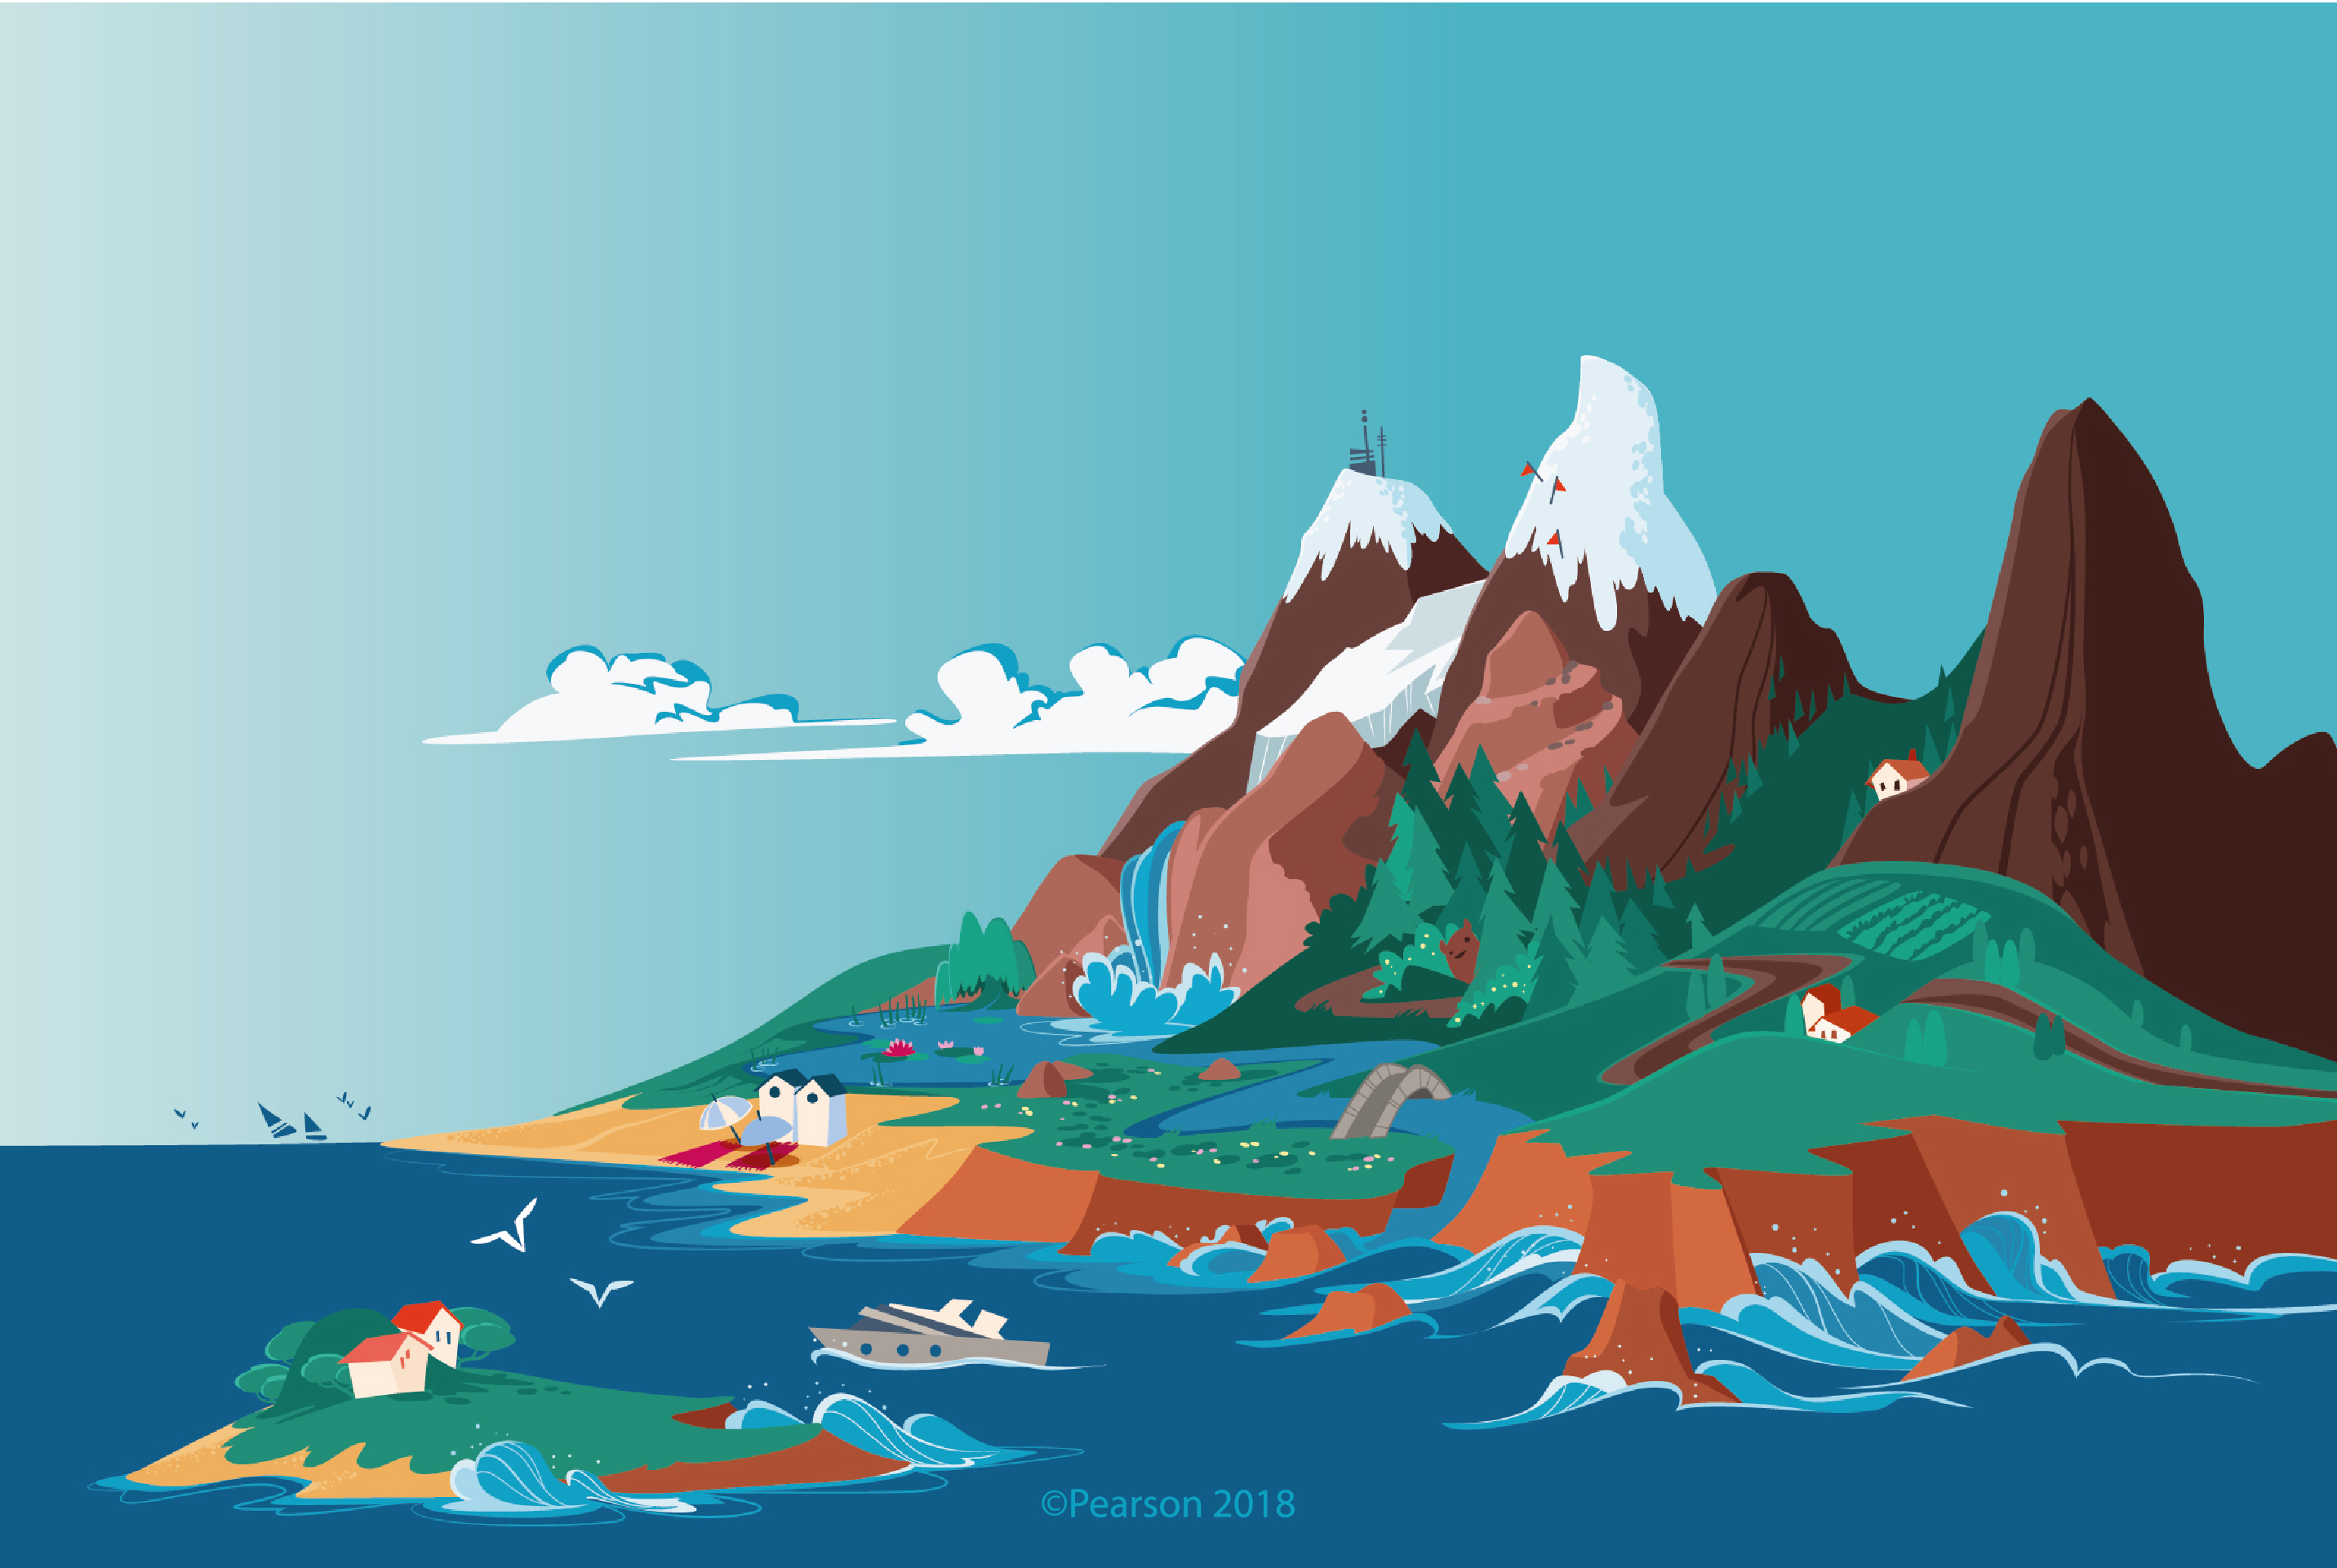 illustration of the possible landscapes: mountains, ski resorts, hills, woods and lakes, beach and country villages, a small island